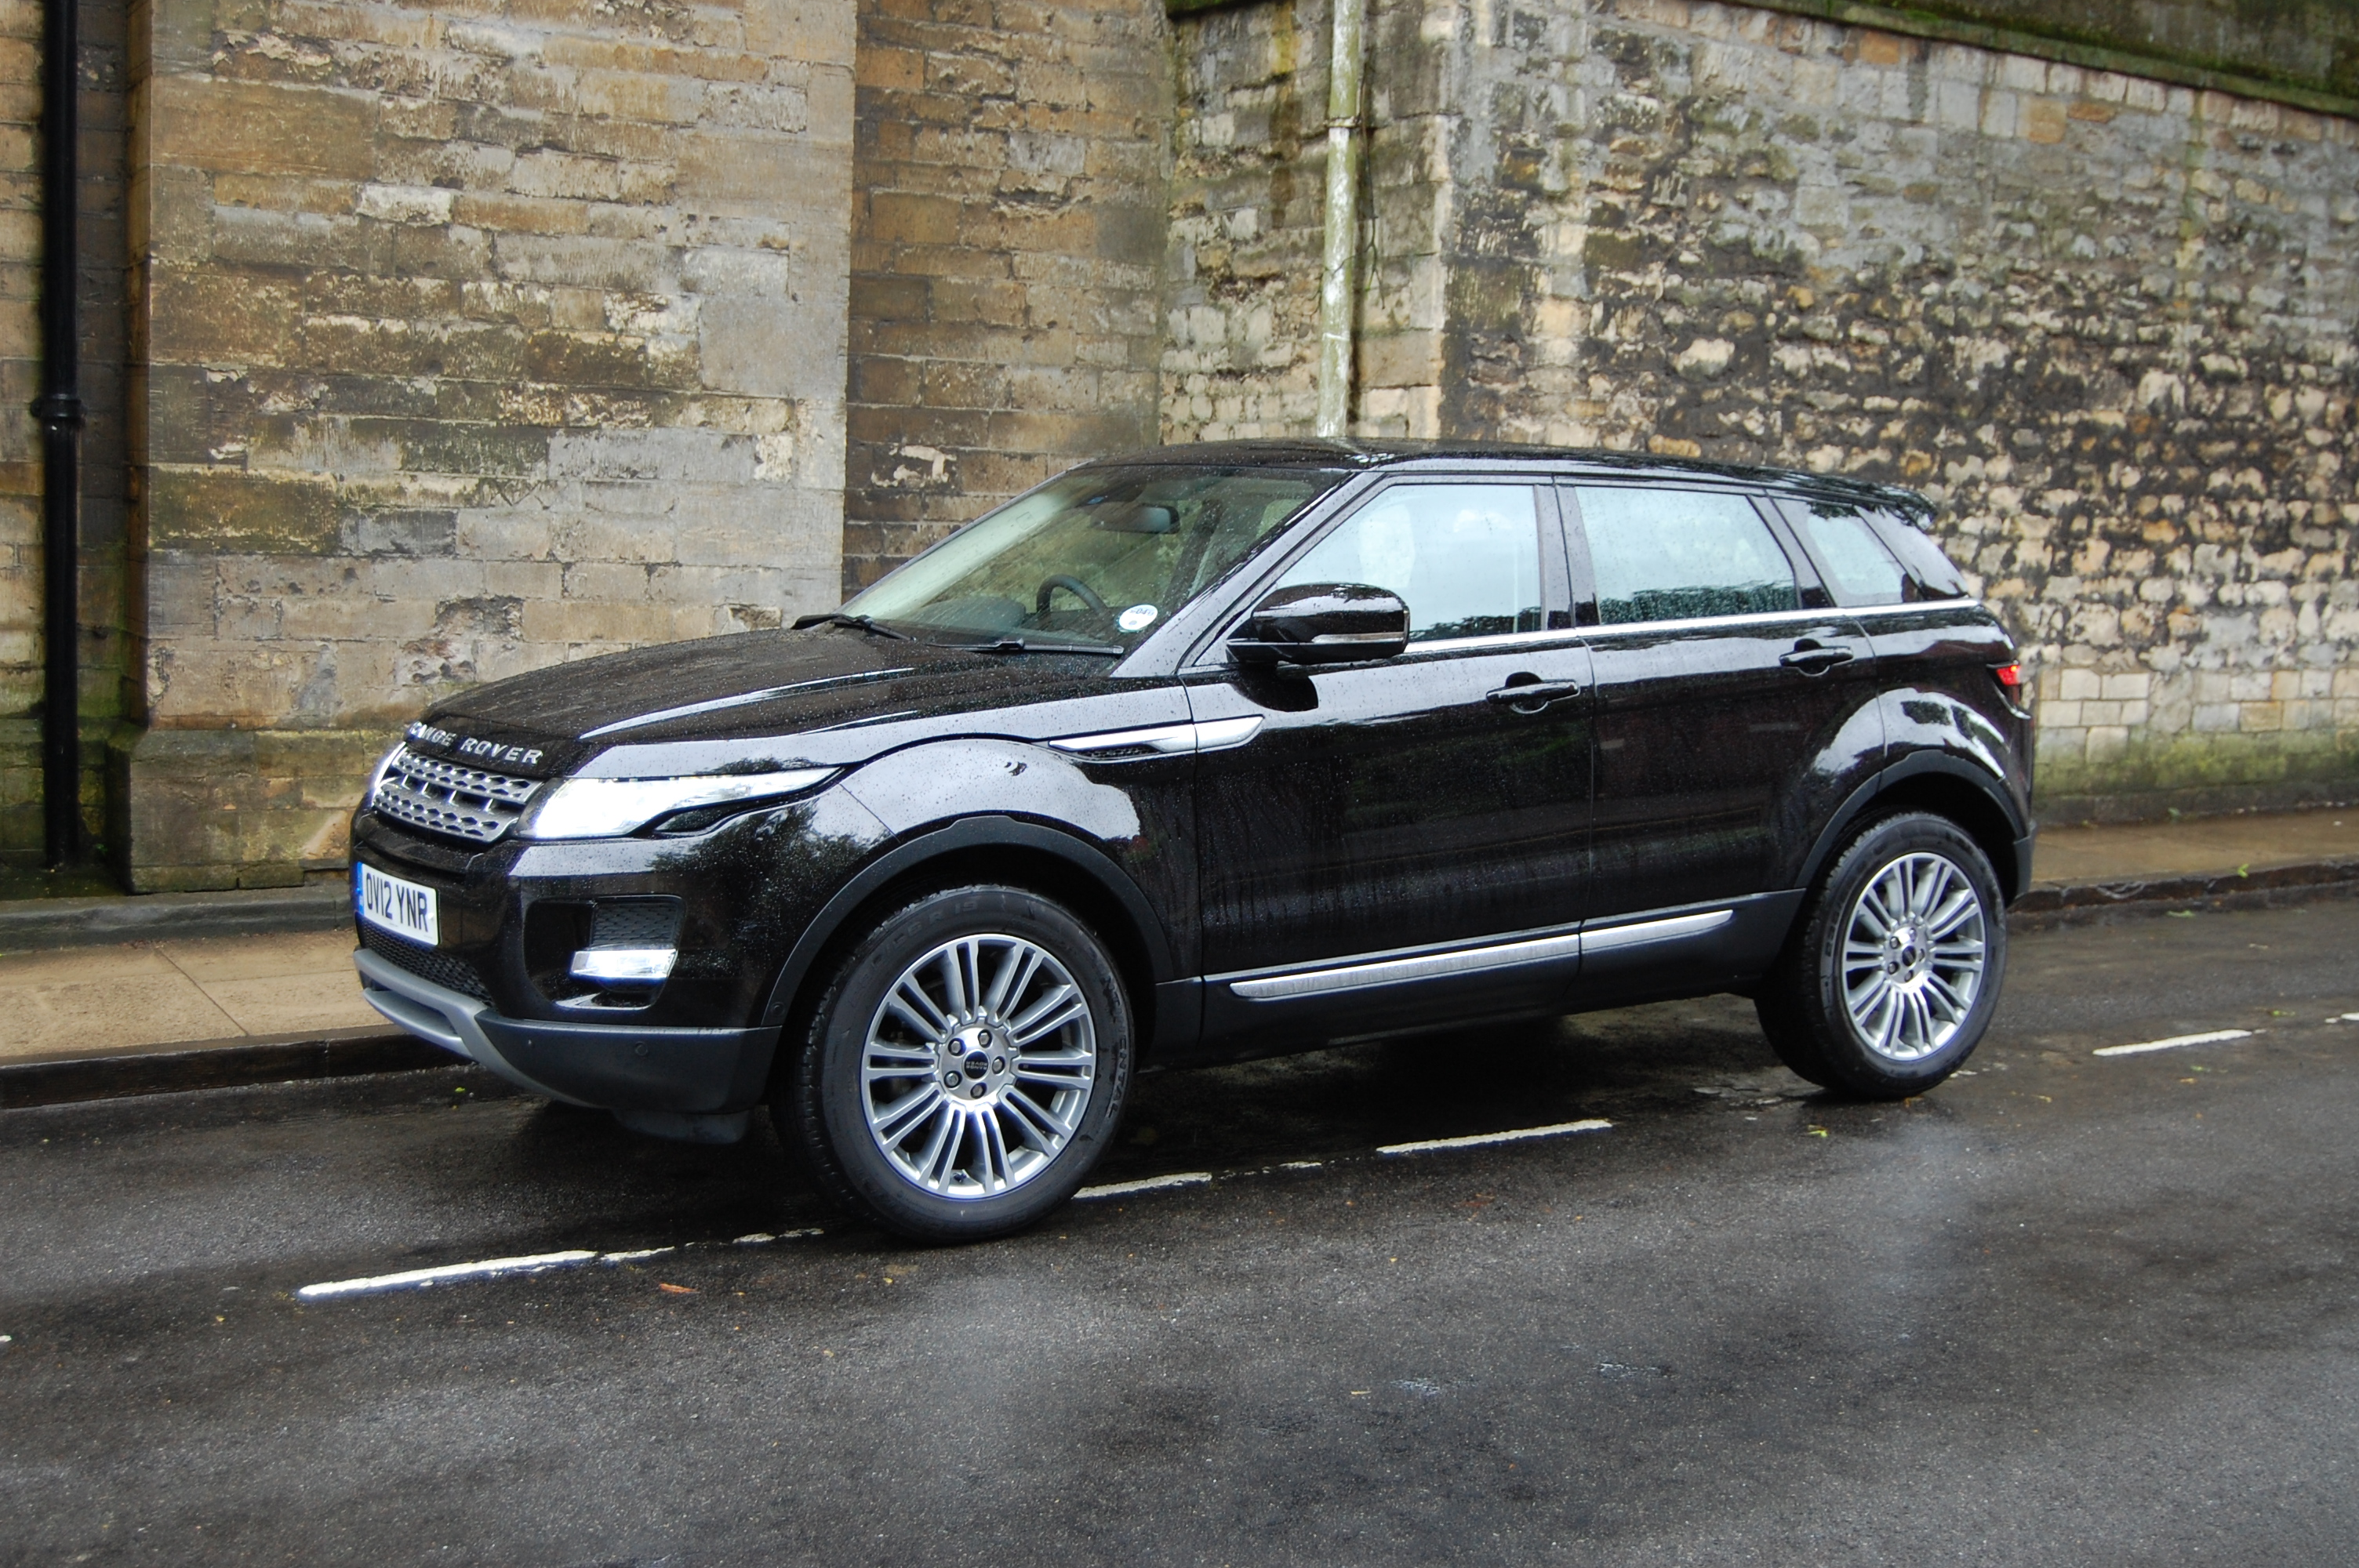 land rover range rover evoque sd4 prestige lux road test petroleum vitae. Black Bedroom Furniture Sets. Home Design Ideas